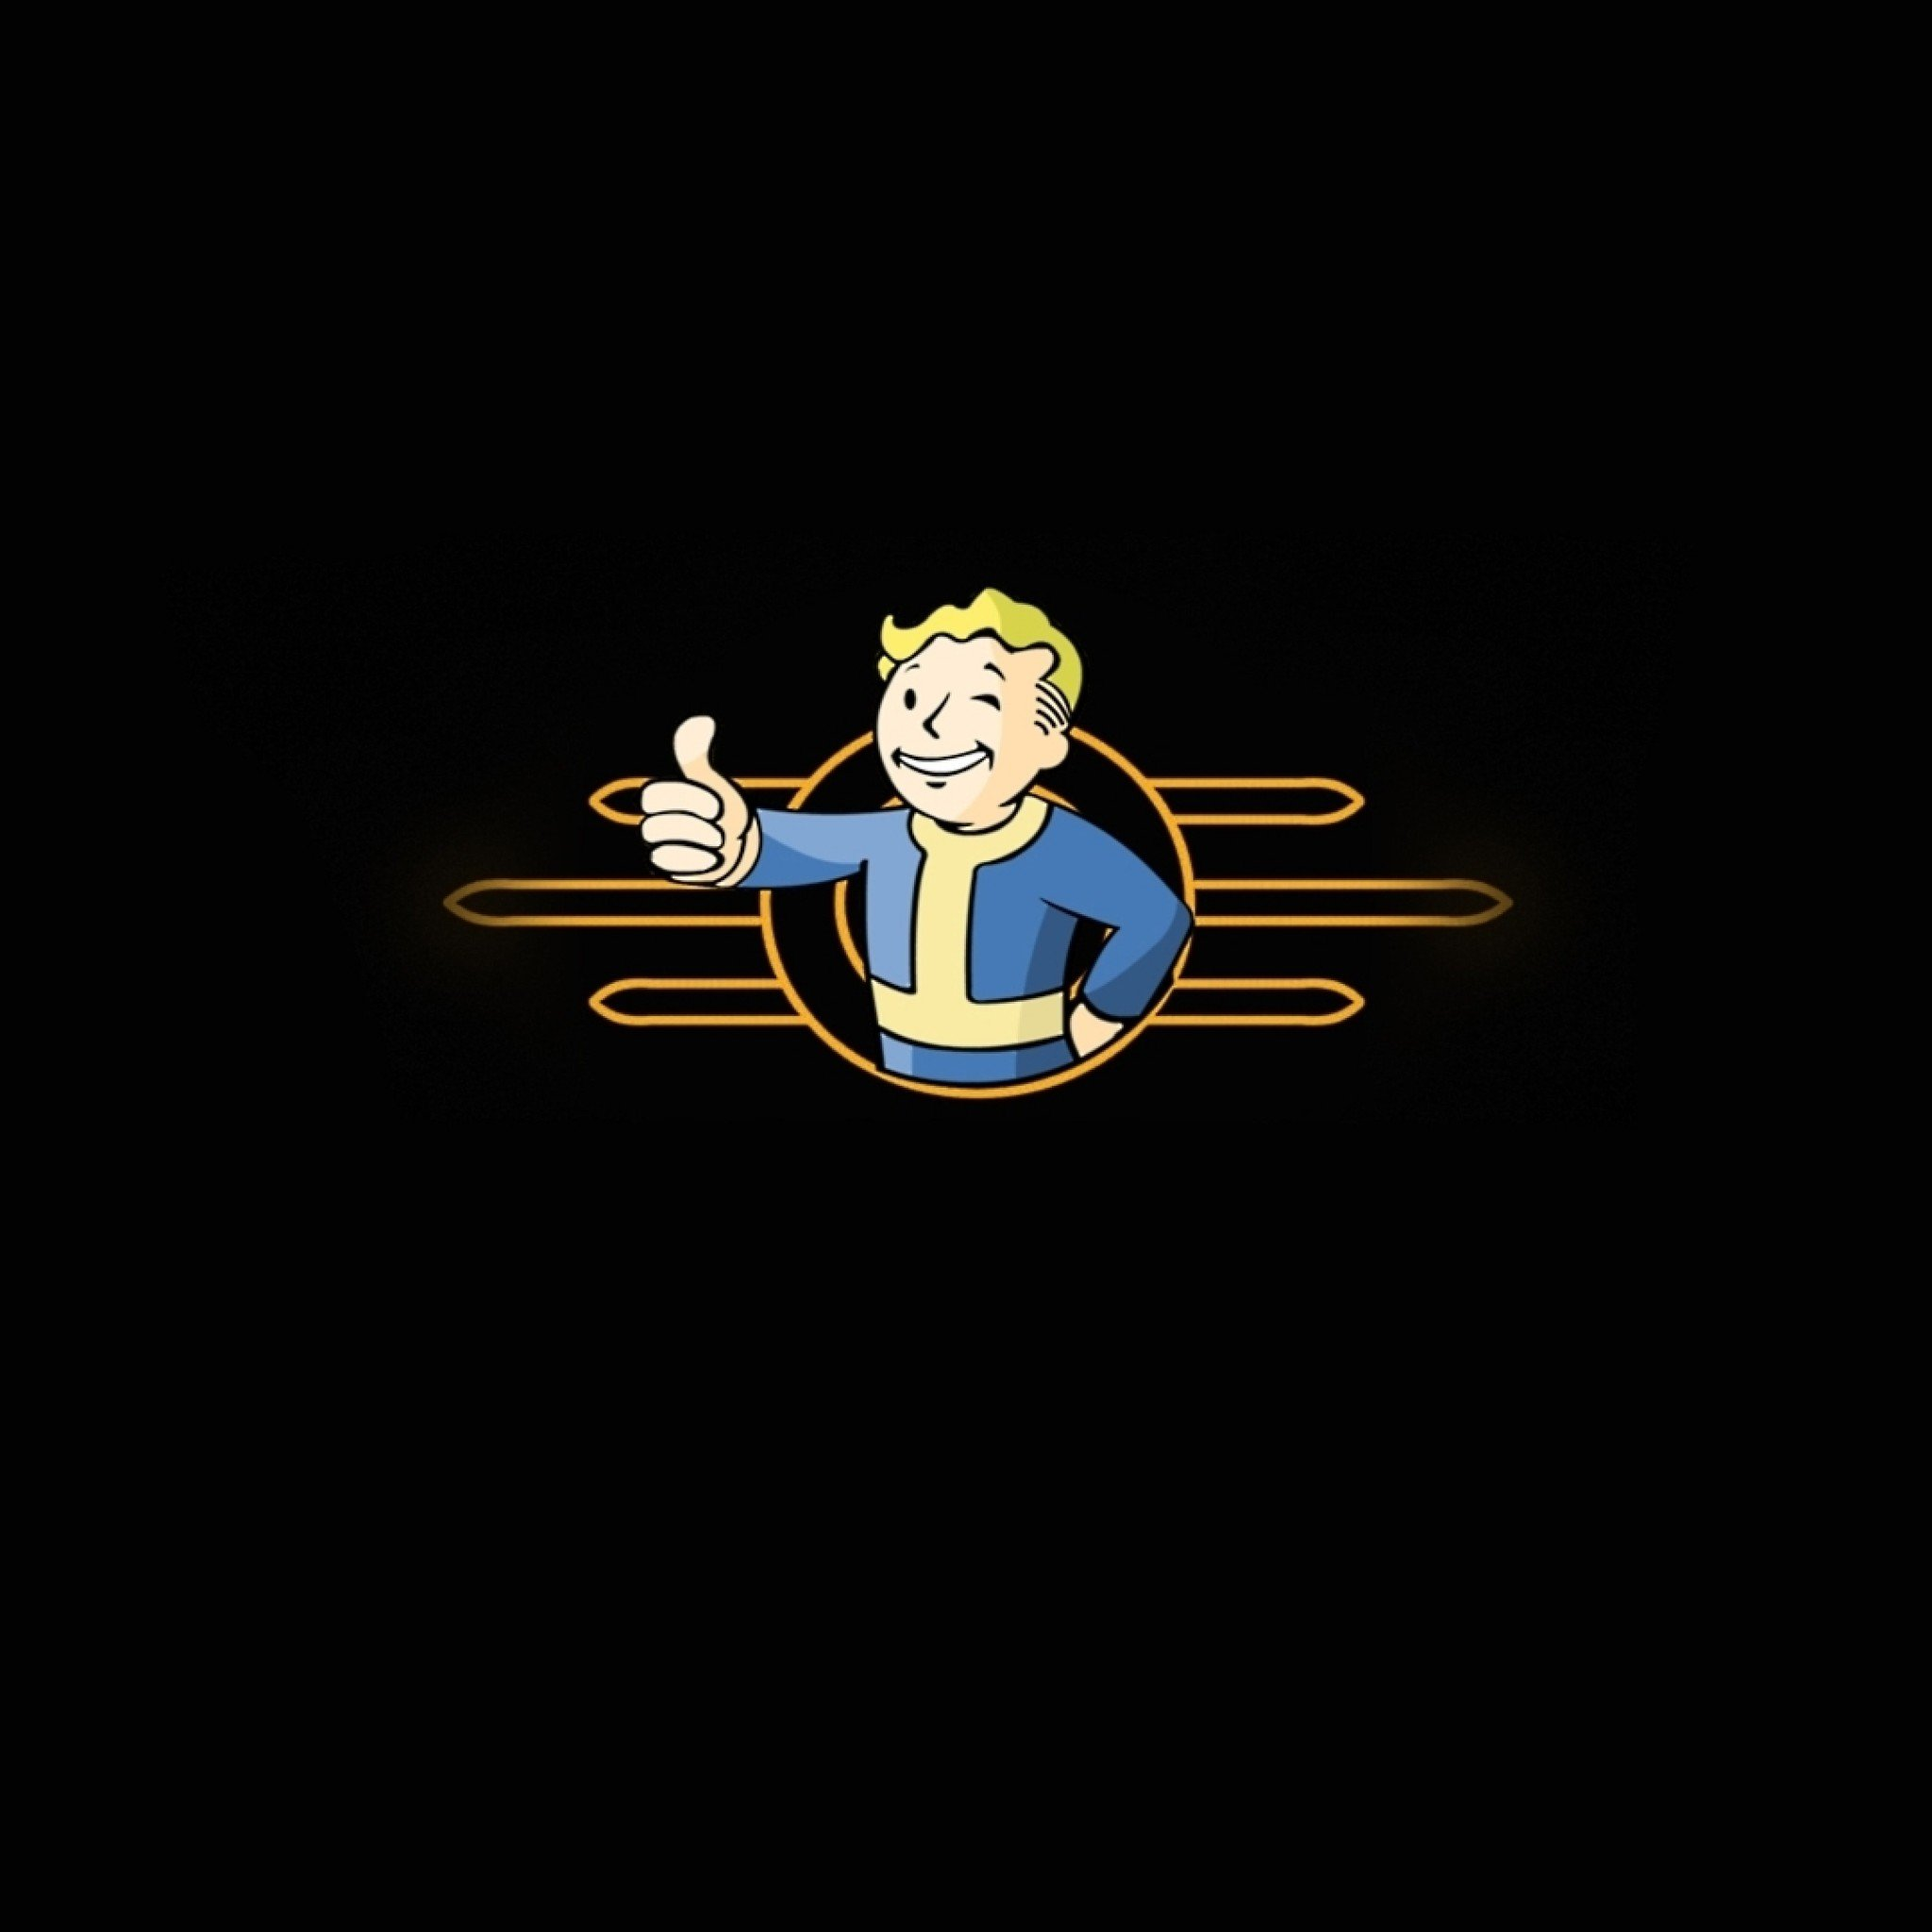 Fallout 4 Wallpaper Hd: Fallout IPhone 6 Wallpaper